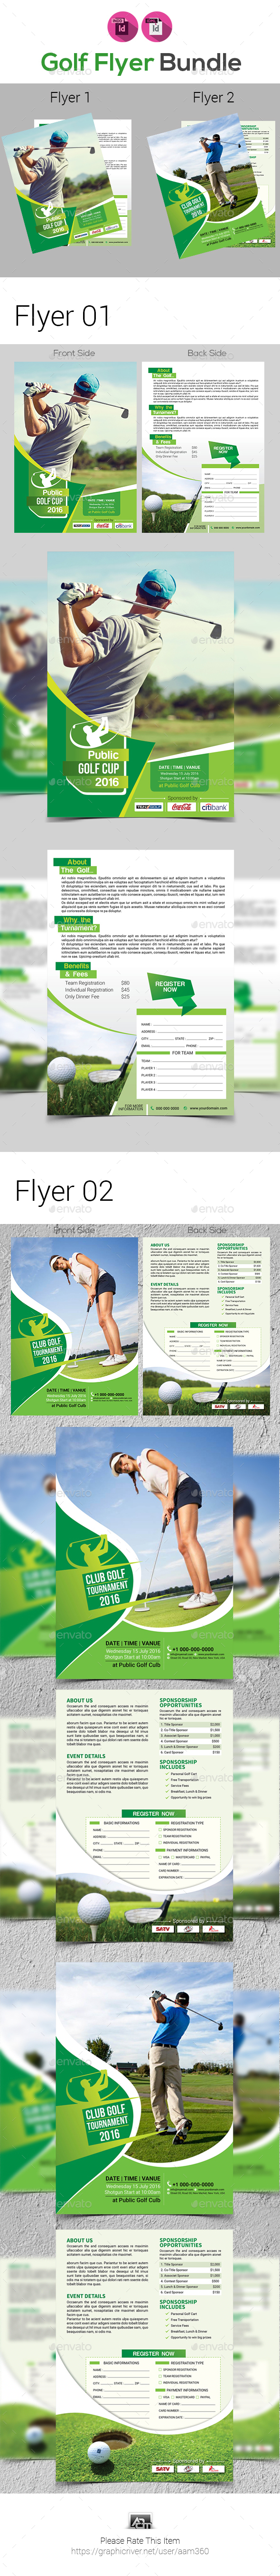 Golf Tournament Flyer Bundle Template - Sports Events